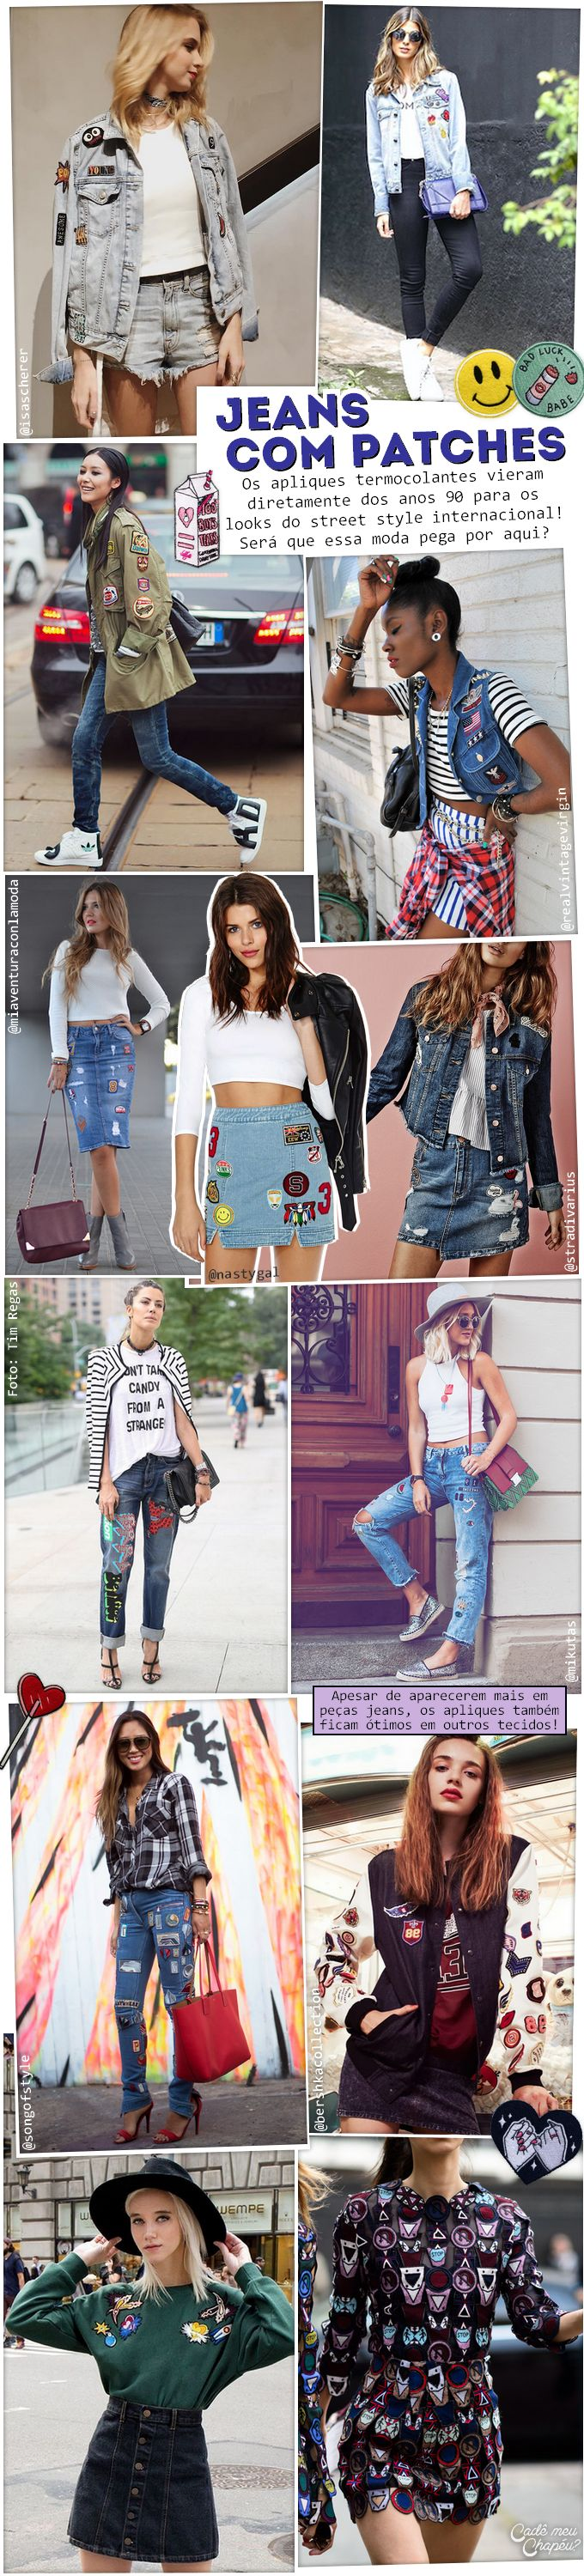 Jeans com Patches | Fashion week | Street style | Trend | Tendência | http://cademeuchapeu.com